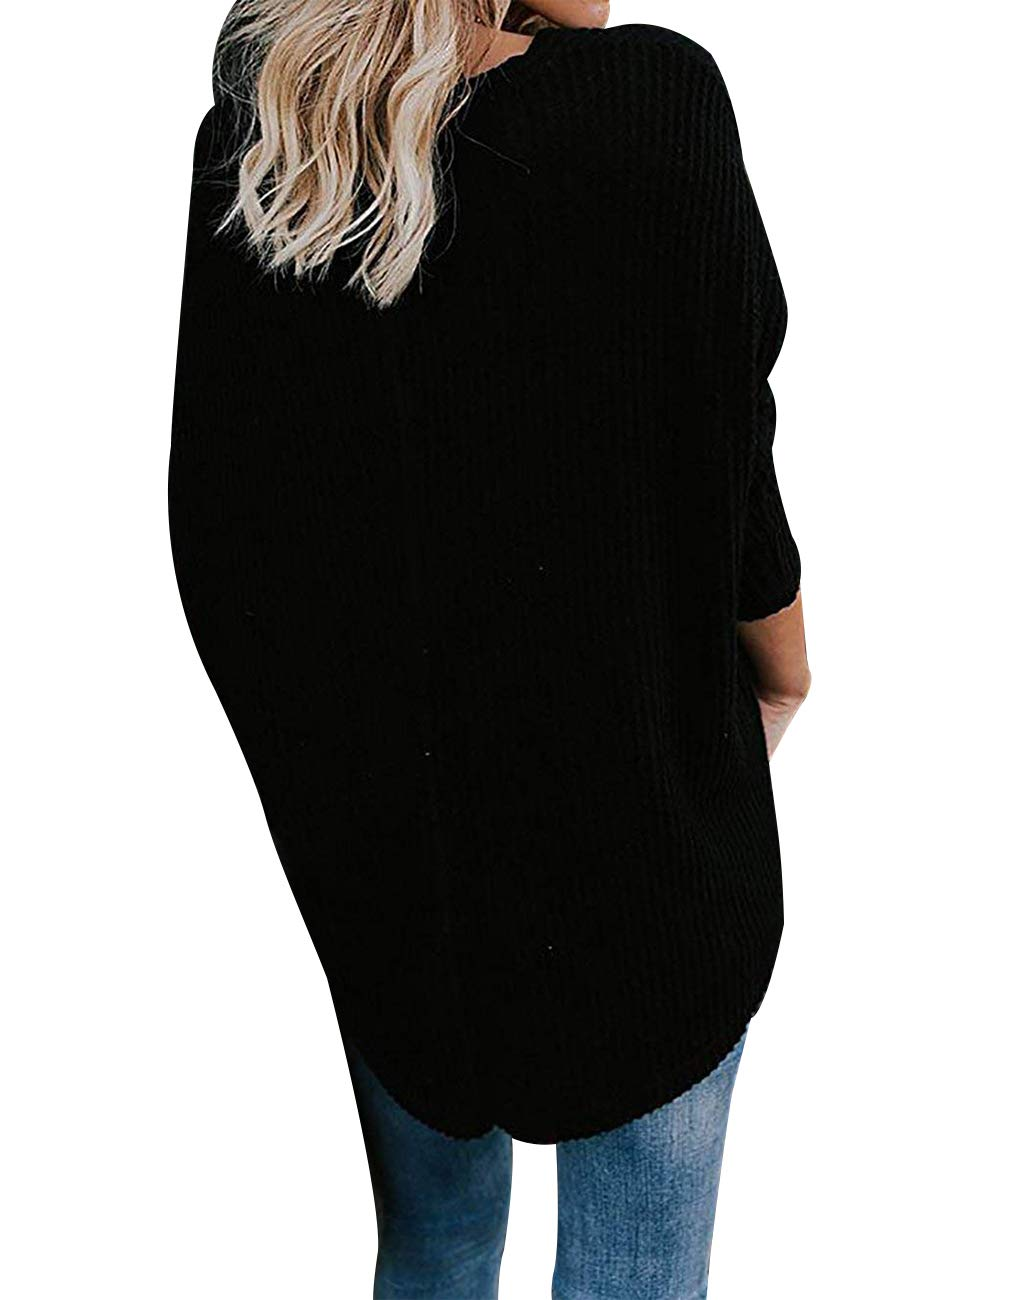 Miskely Women's Waffle Knit Tunic Tops Tie Knot Henley Tops Blouse Casual Loose Bat Wing Plain Shirts (Small, Black) by Miskely (Image #3)